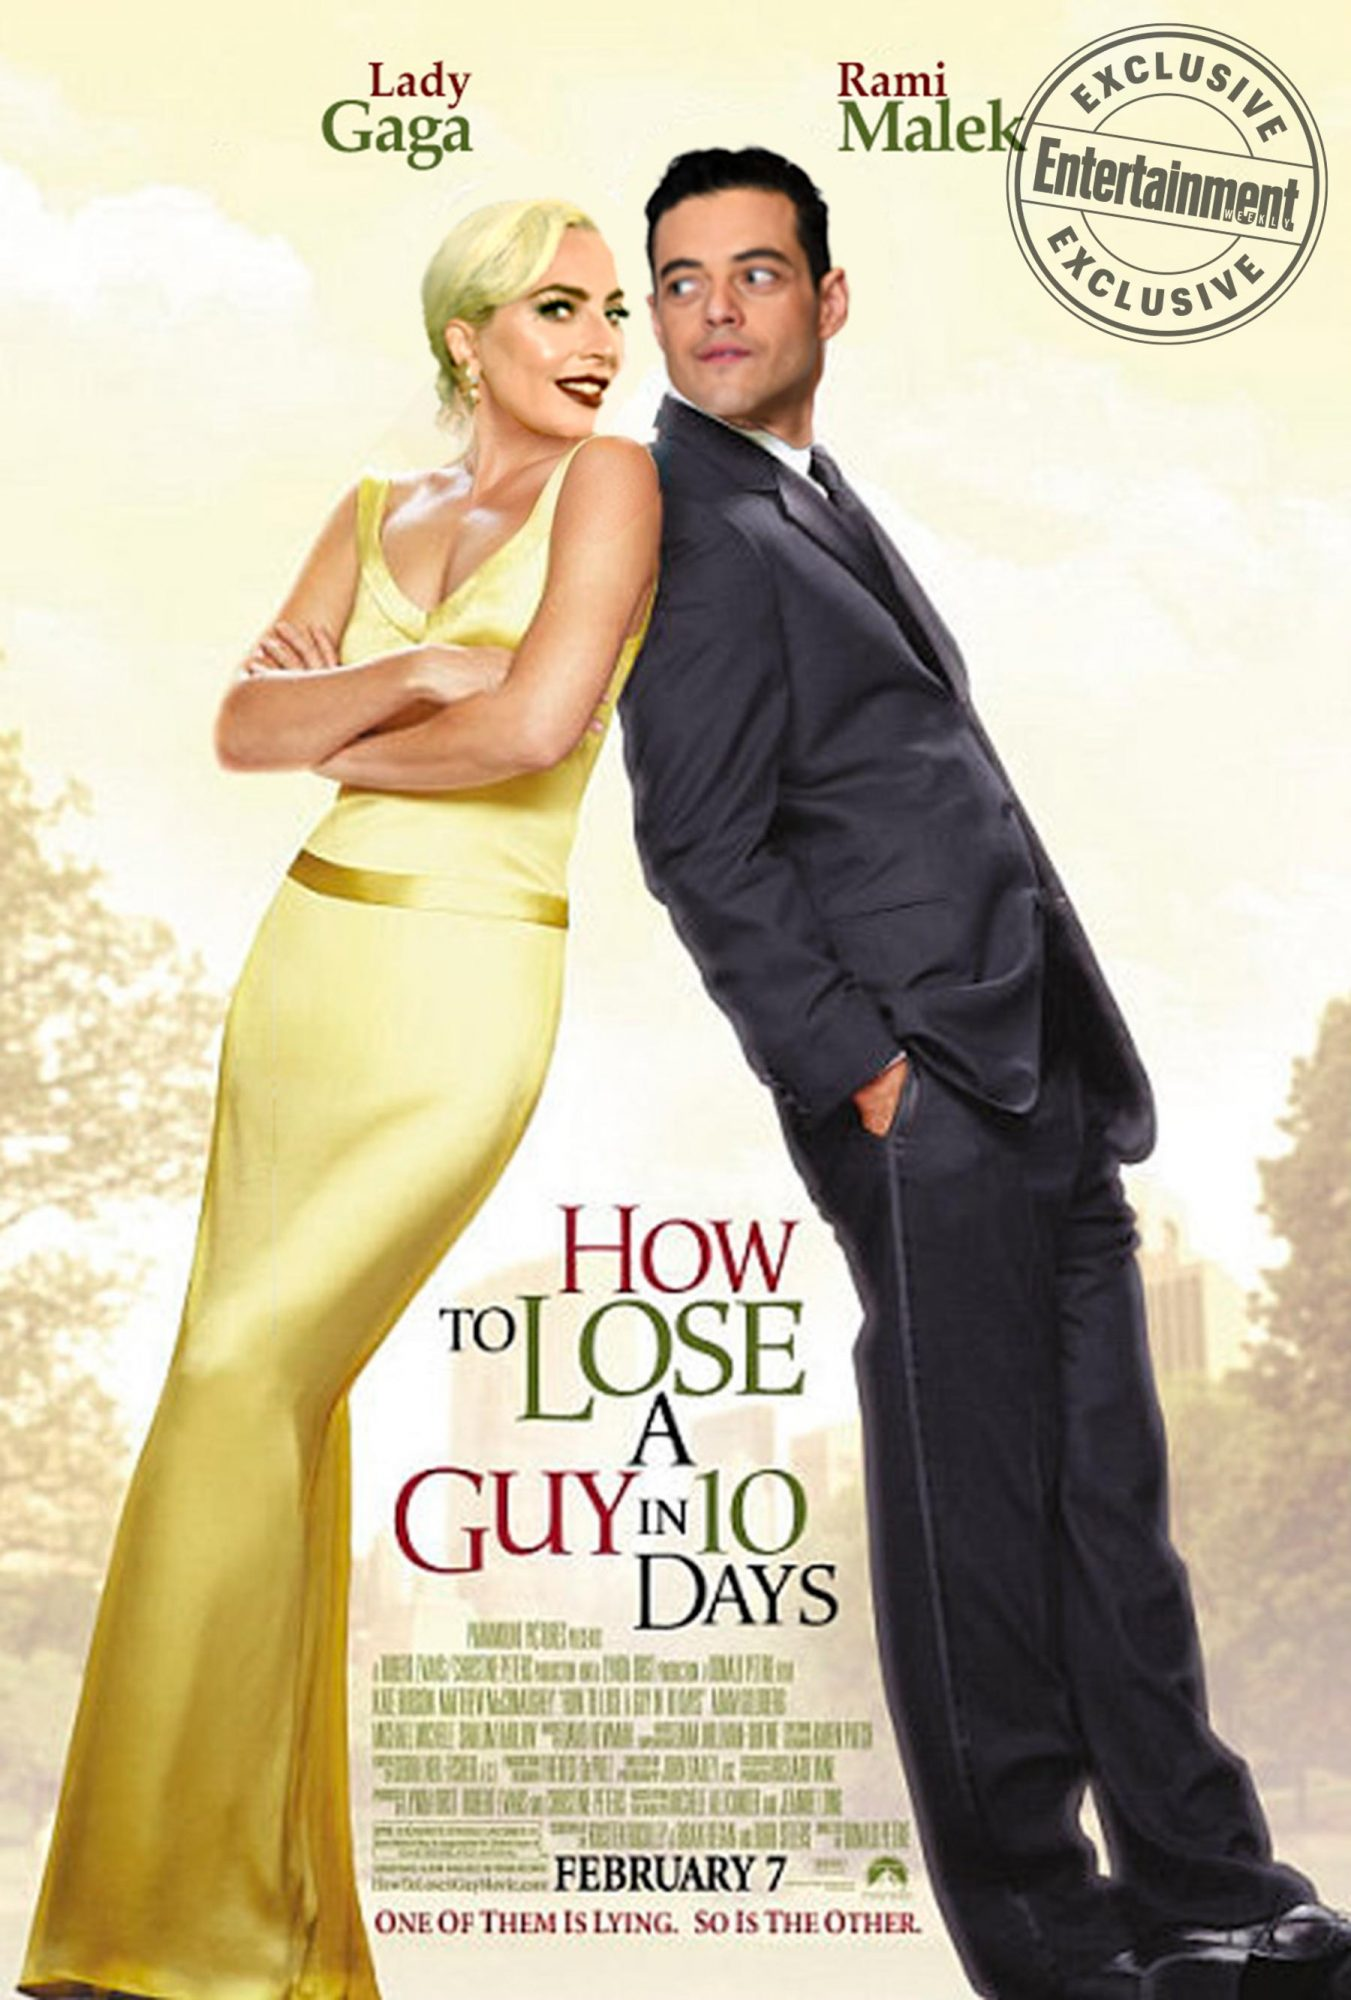 how-to-lose-a-guy-in-10-days-movie-poster-rami-and-gaga-(2)